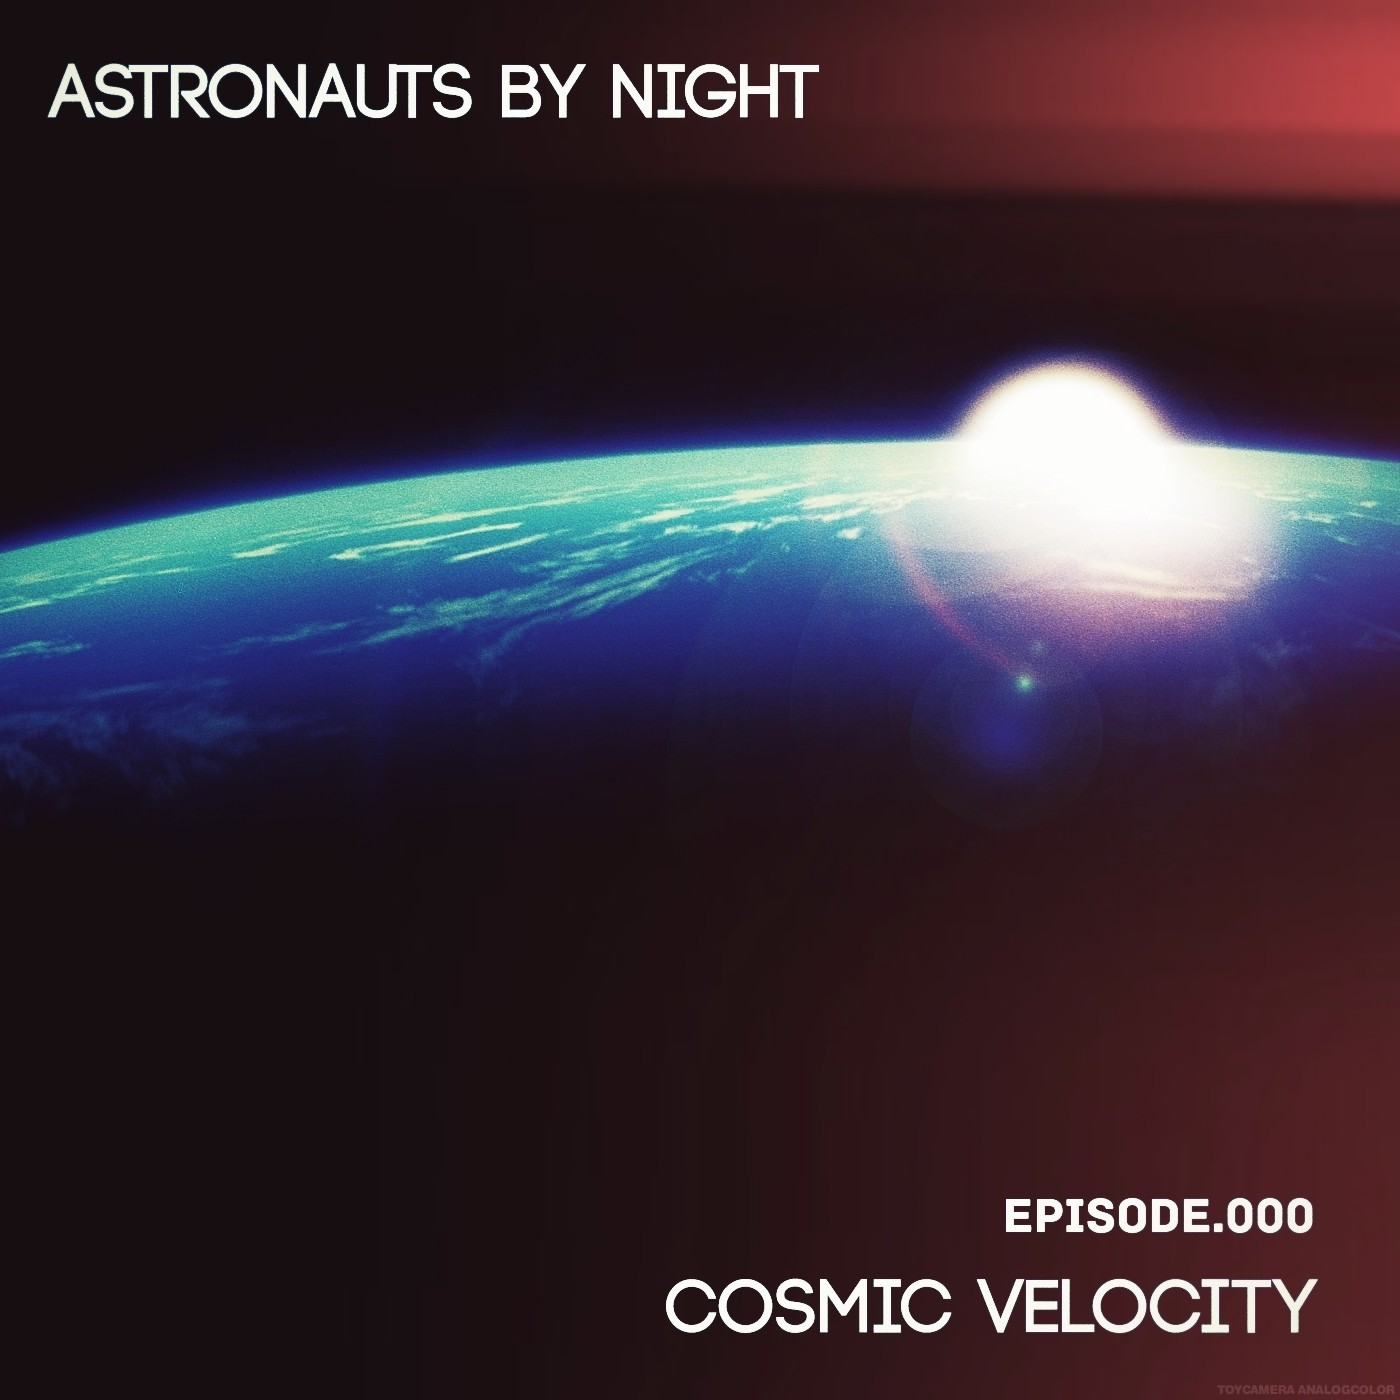 The Astronauts By Night's Top Tracks of 2013